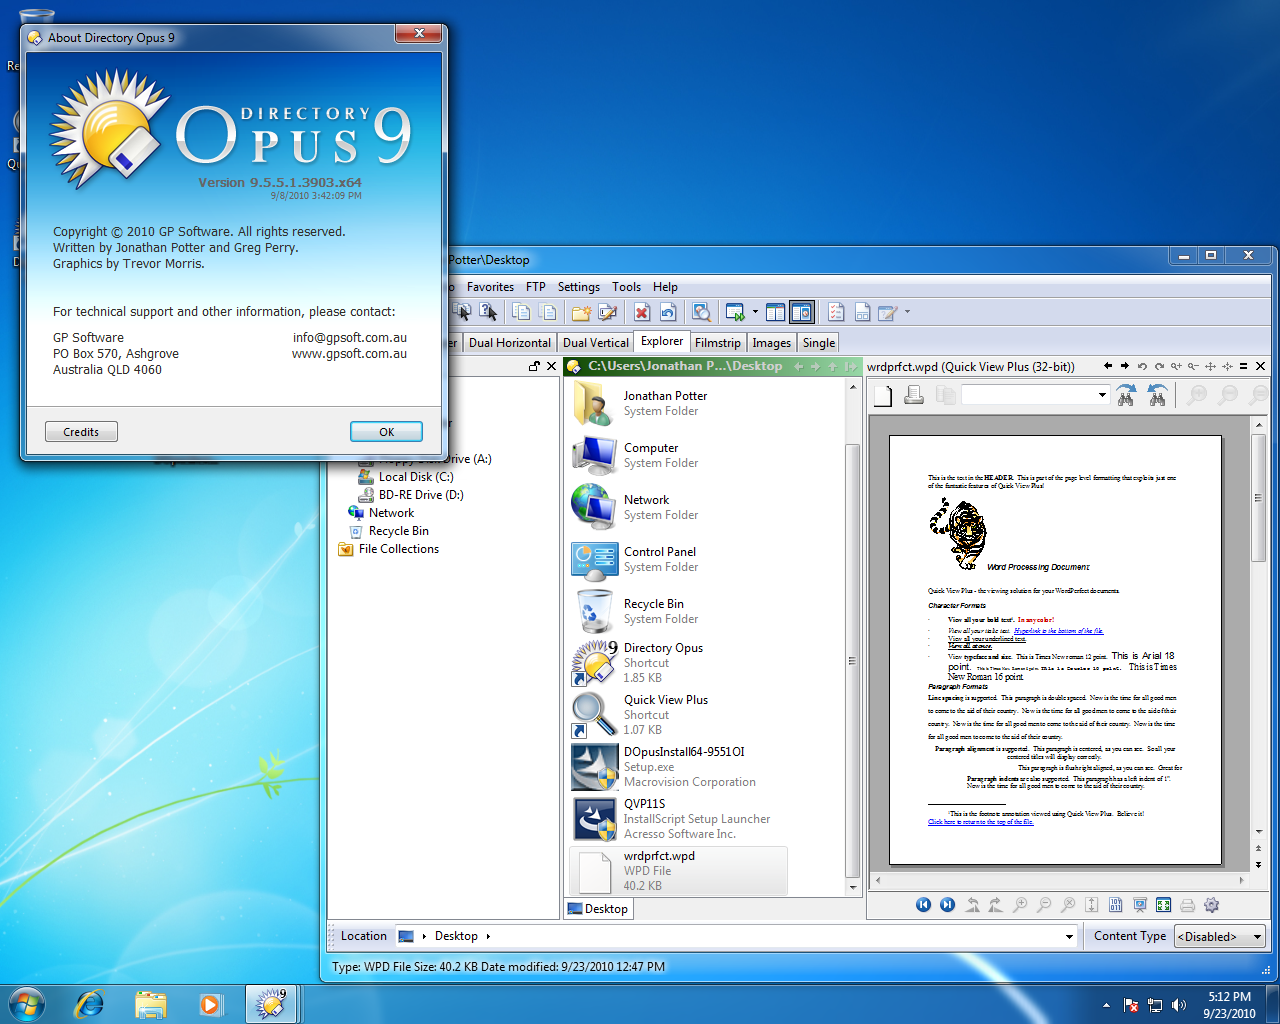 Activex preview office web plugin for directory opus - Open office download for windows 7 64 bit ...